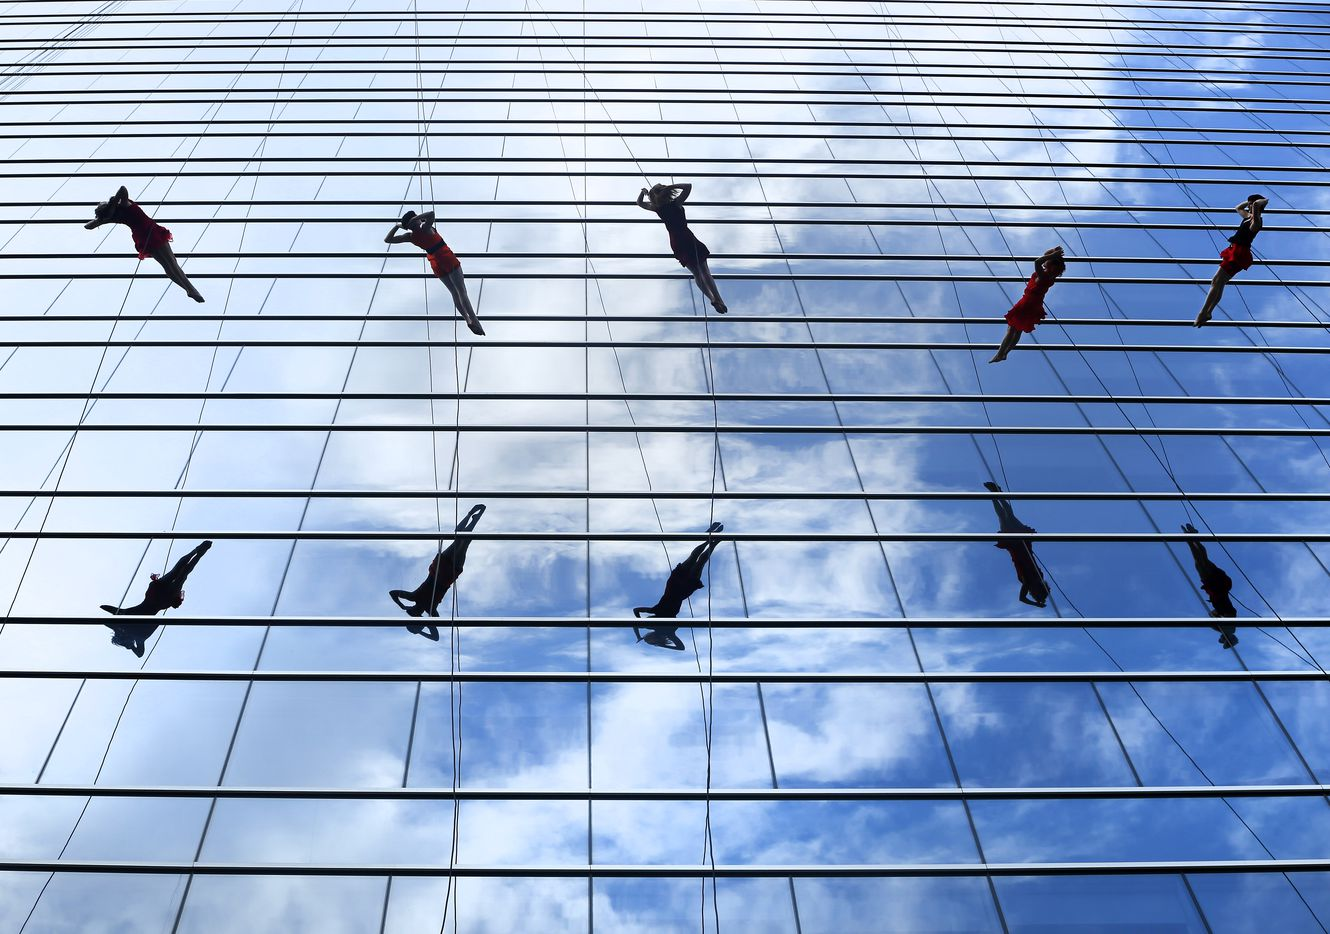 Members of the Bandaloop vertical dance company perform on the side of the KPMG building during the groundbreaking ceremony.